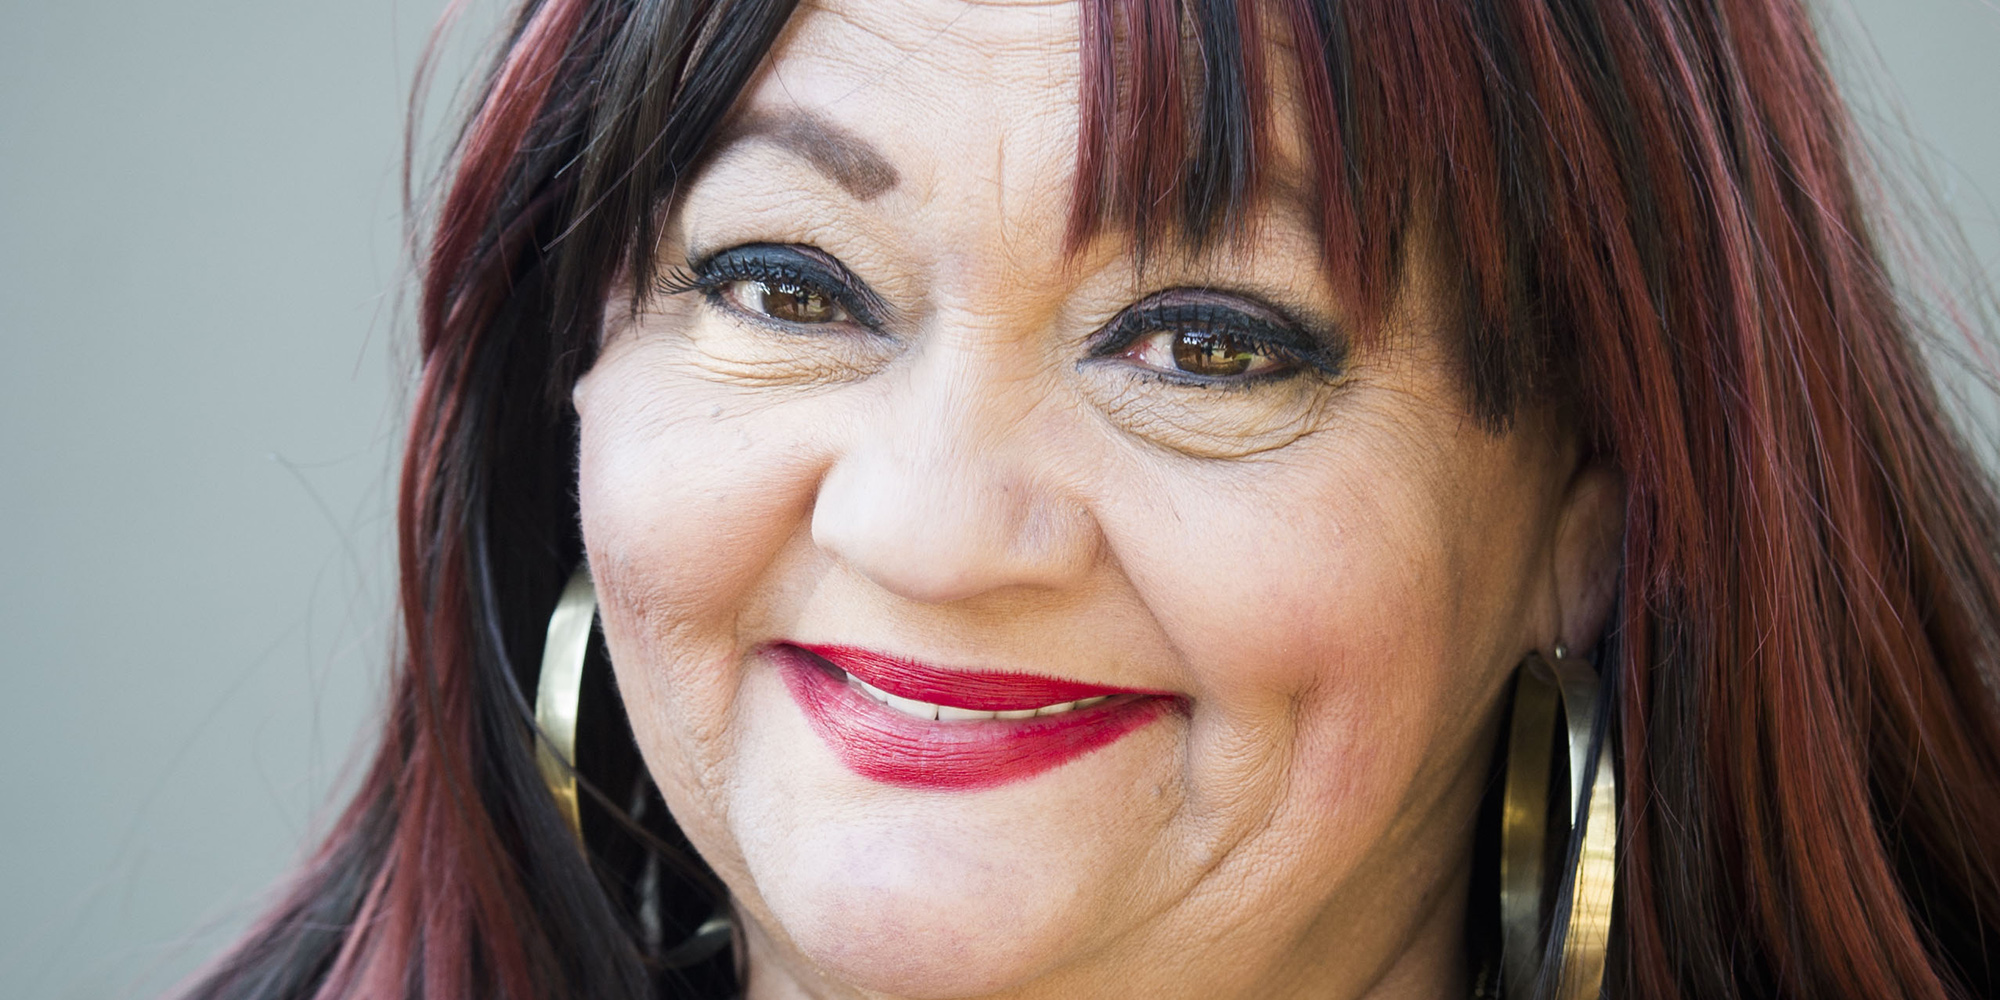 FUNERAL OF A LEGEND: The death of Shaleen Surtie-Richards 'is a wake-up call to care' for South African artists